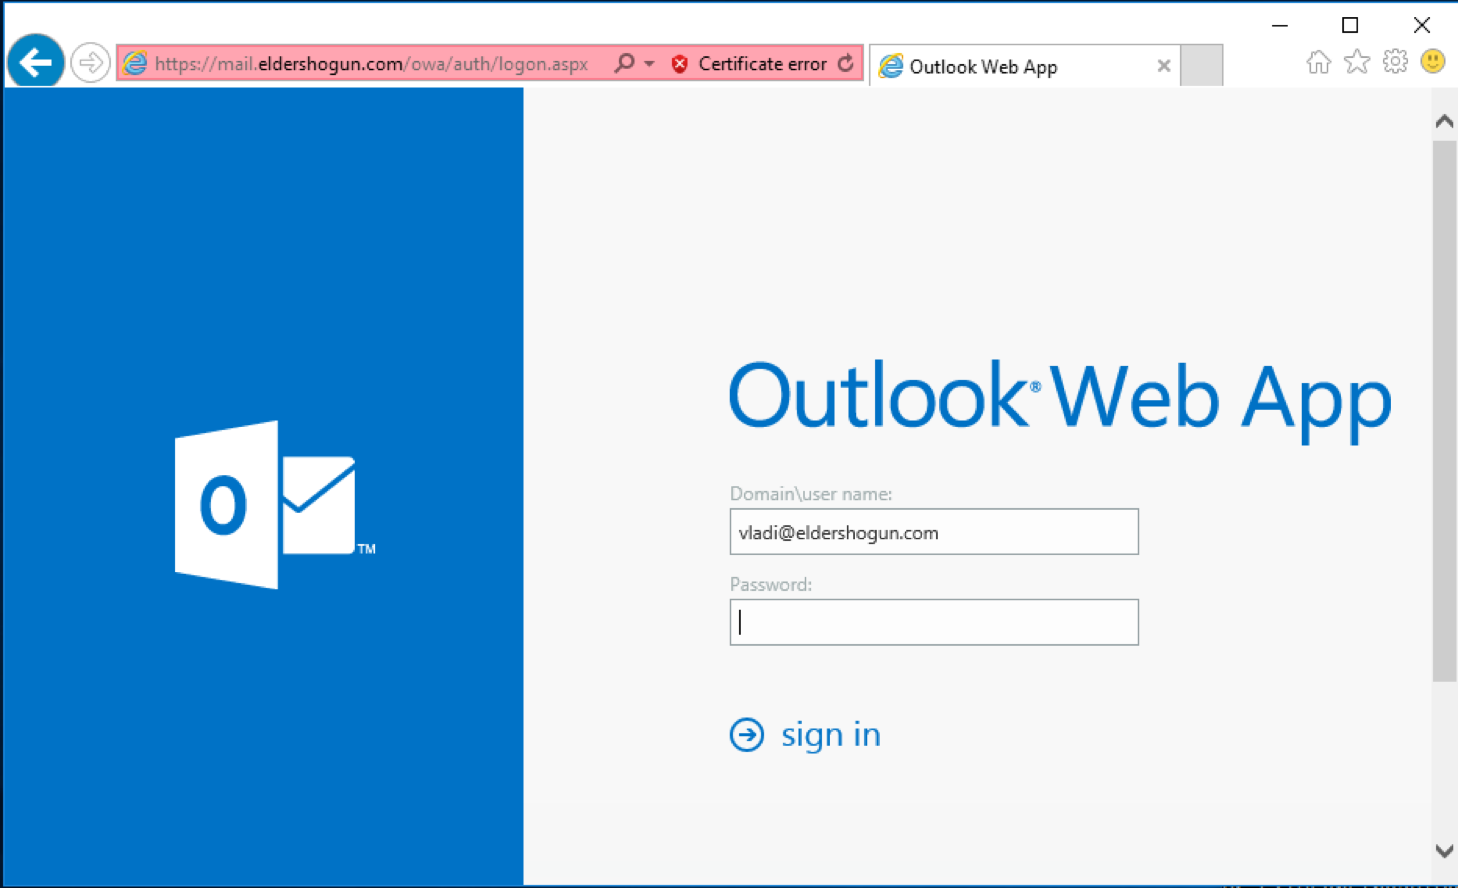 Bypassing Two-Factor Authentication on Outlook Web Access - Cyber Defense  Magazine